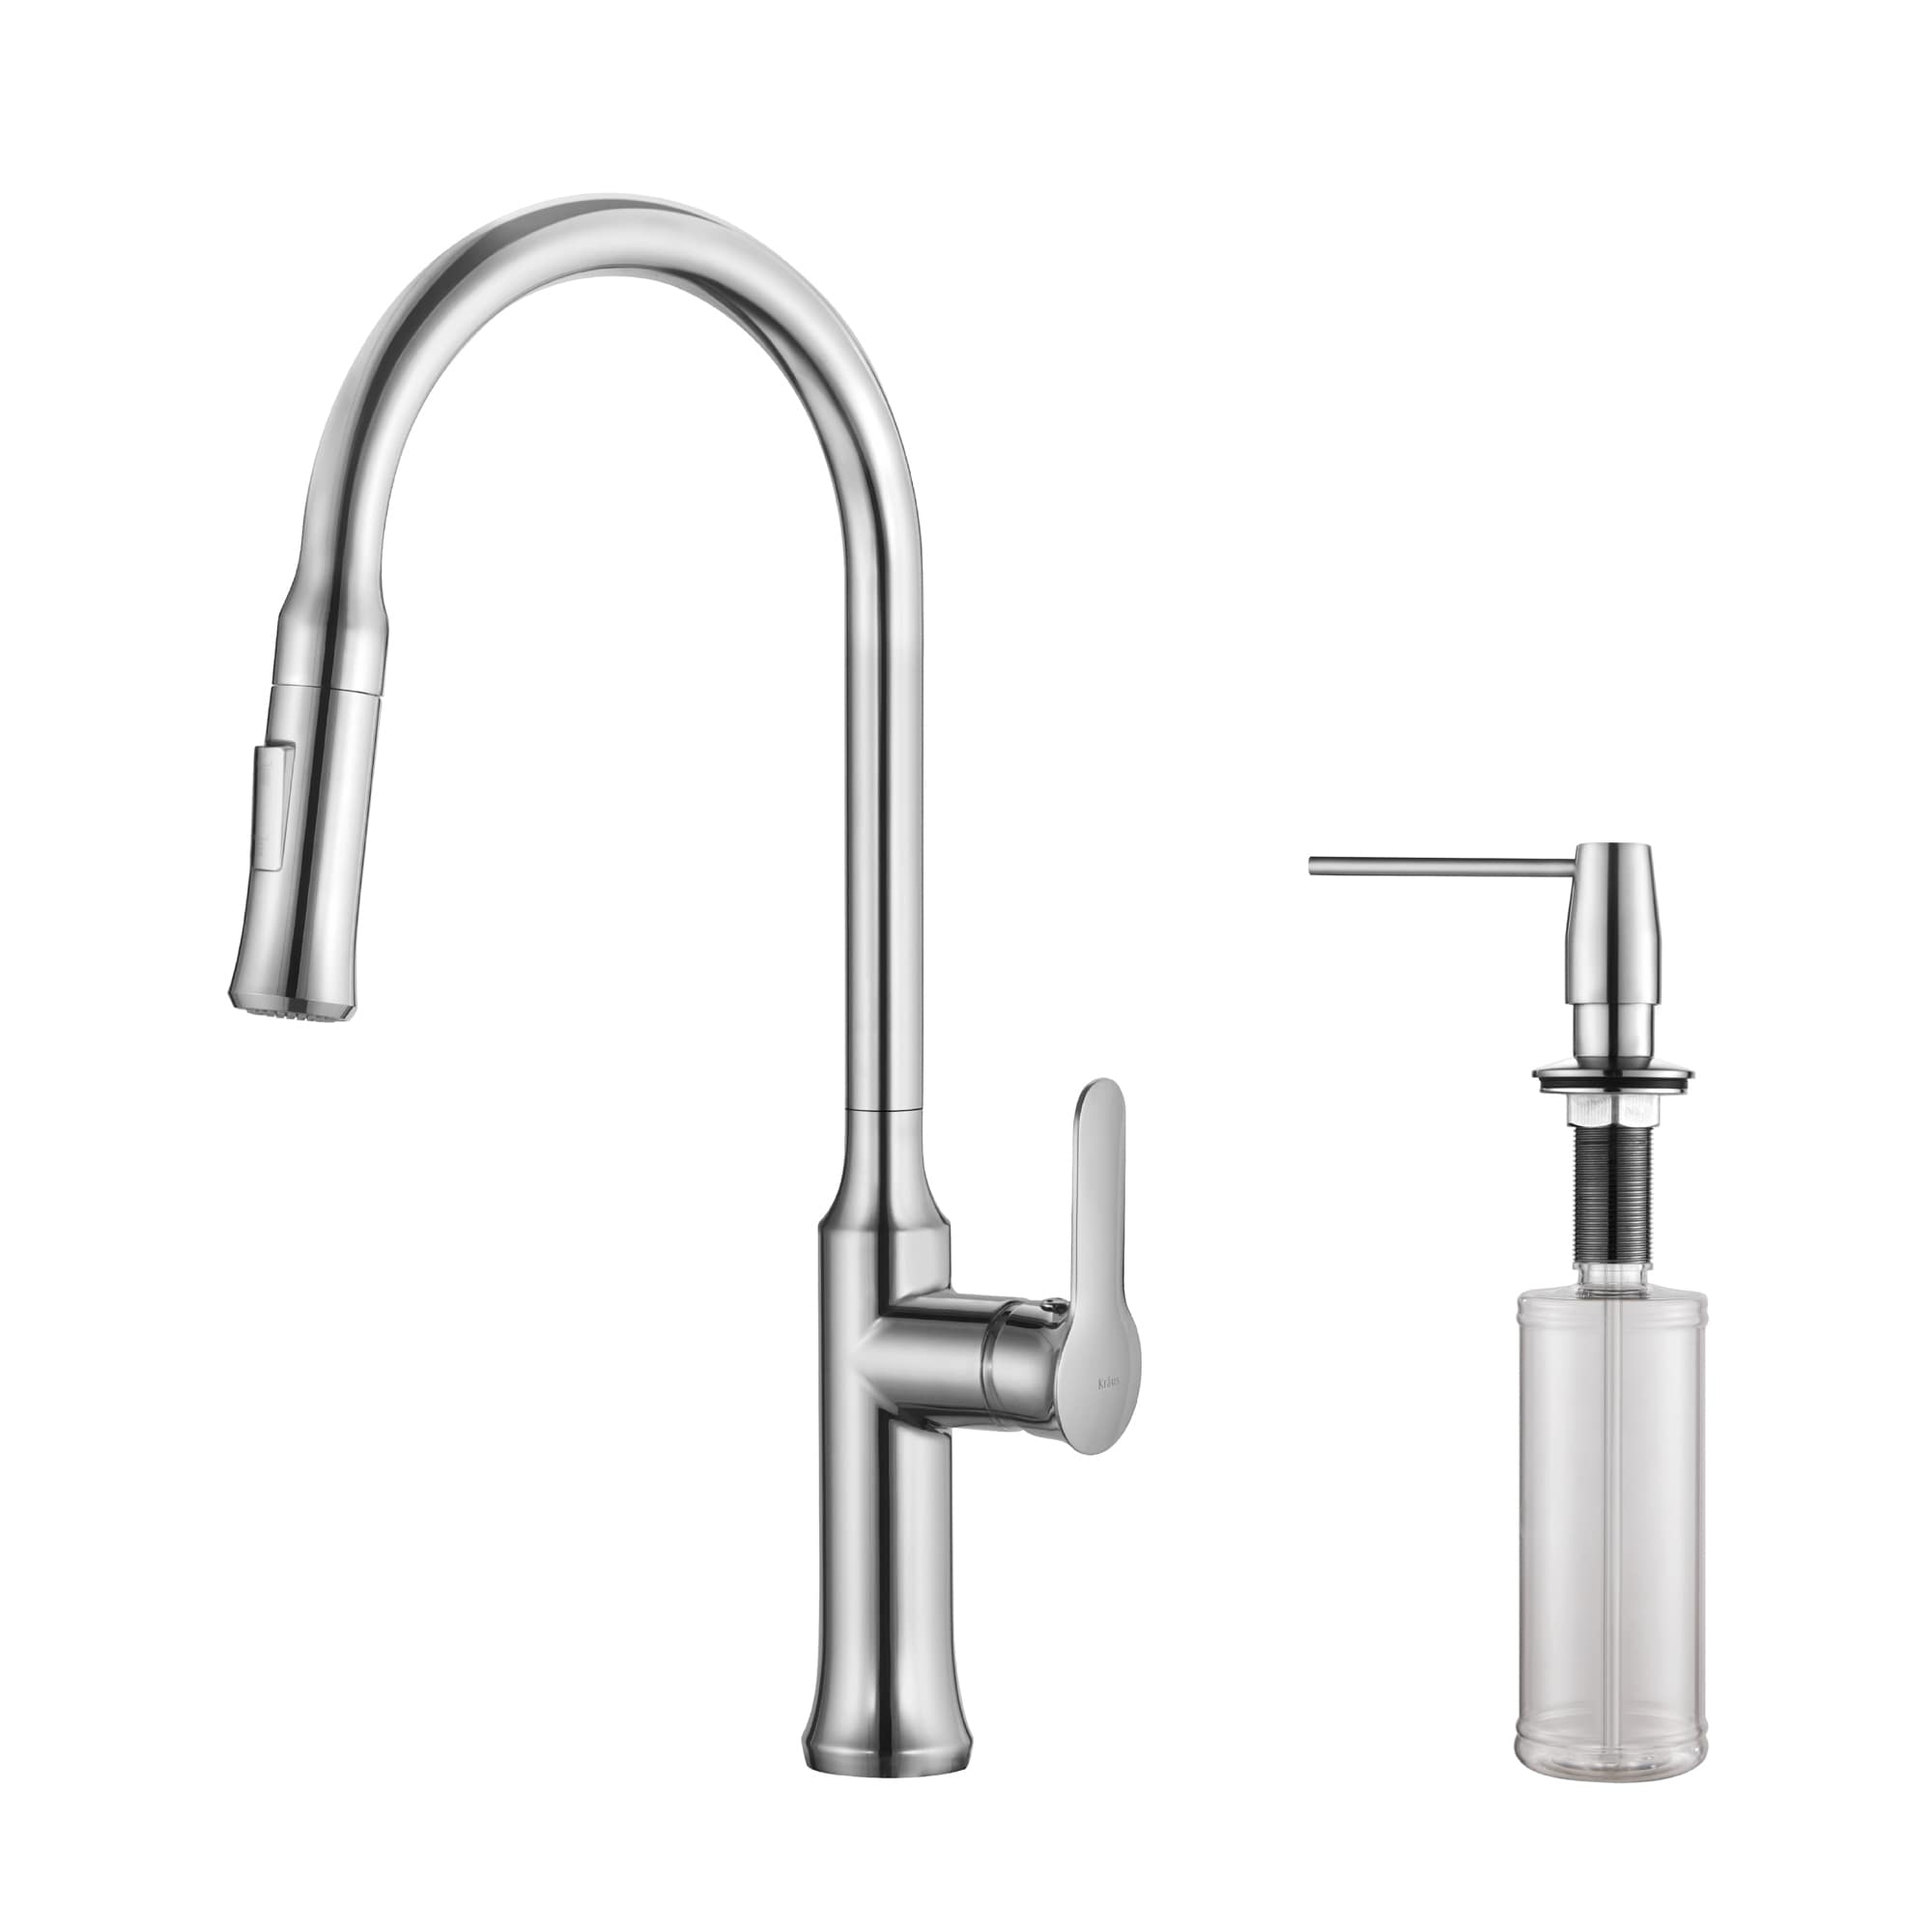 single house kitchen hardware regarding of pull bar gooseneck ideas faucets sizing with out photos spray x luxury faucet